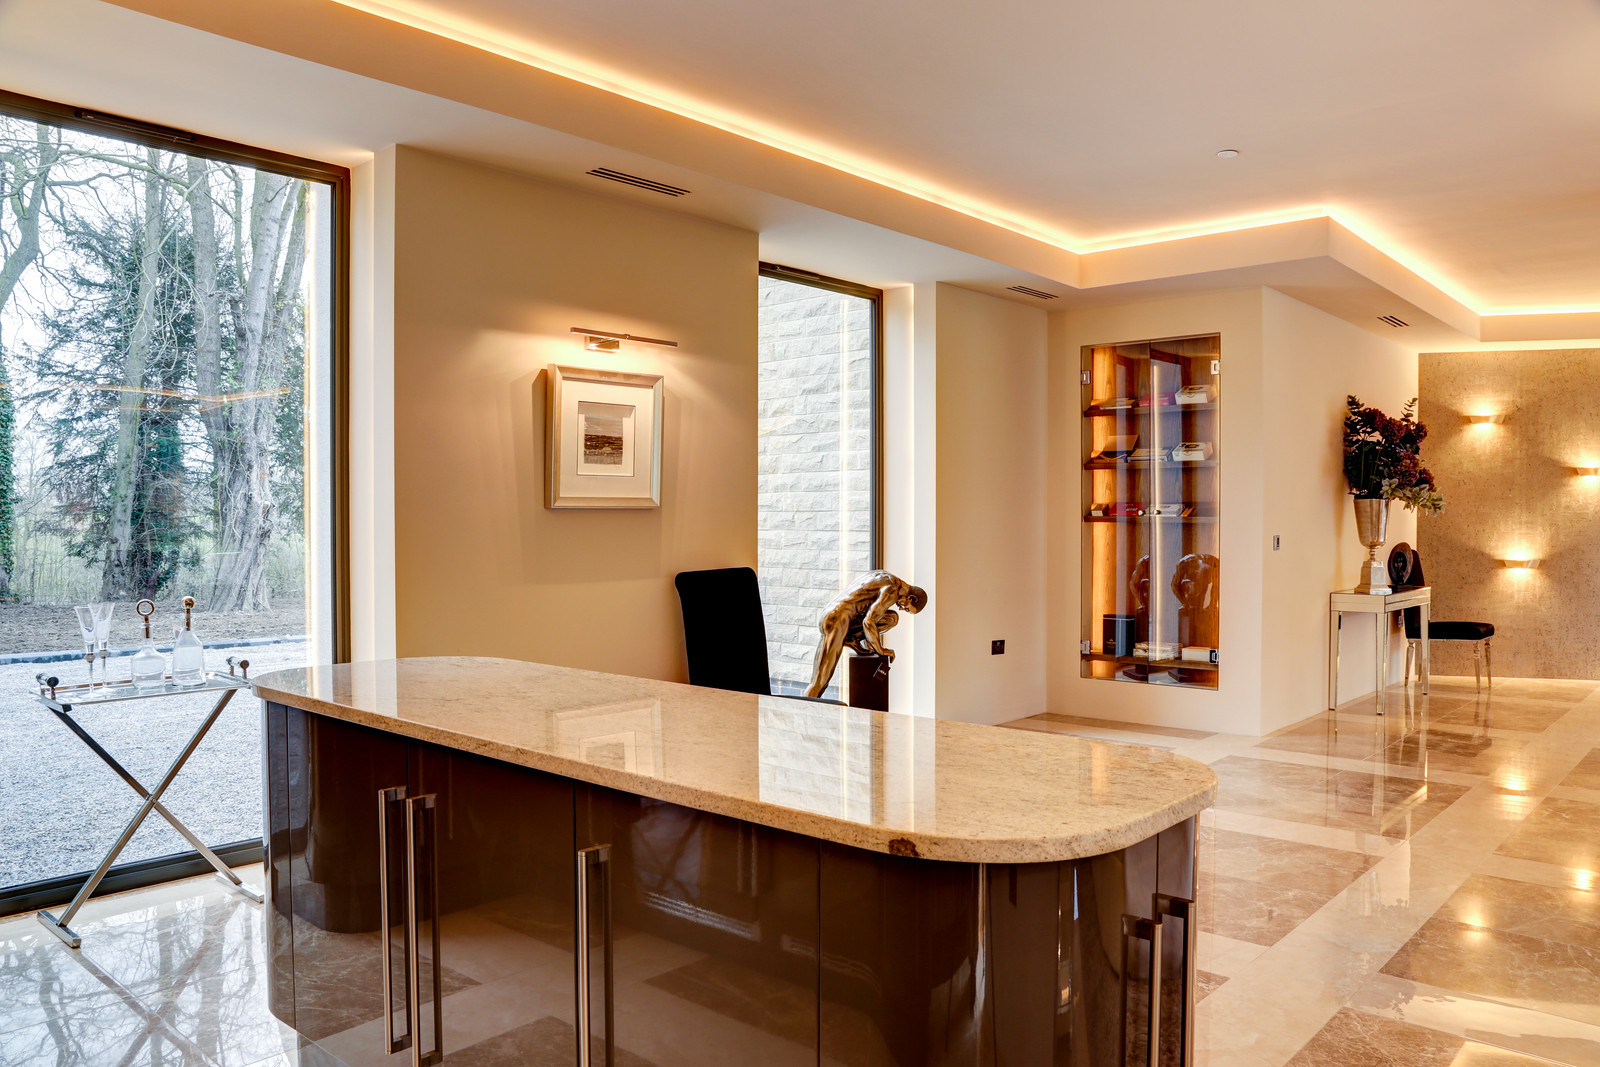 Marble floor and island unit in the Tanglewood dining room kitchen